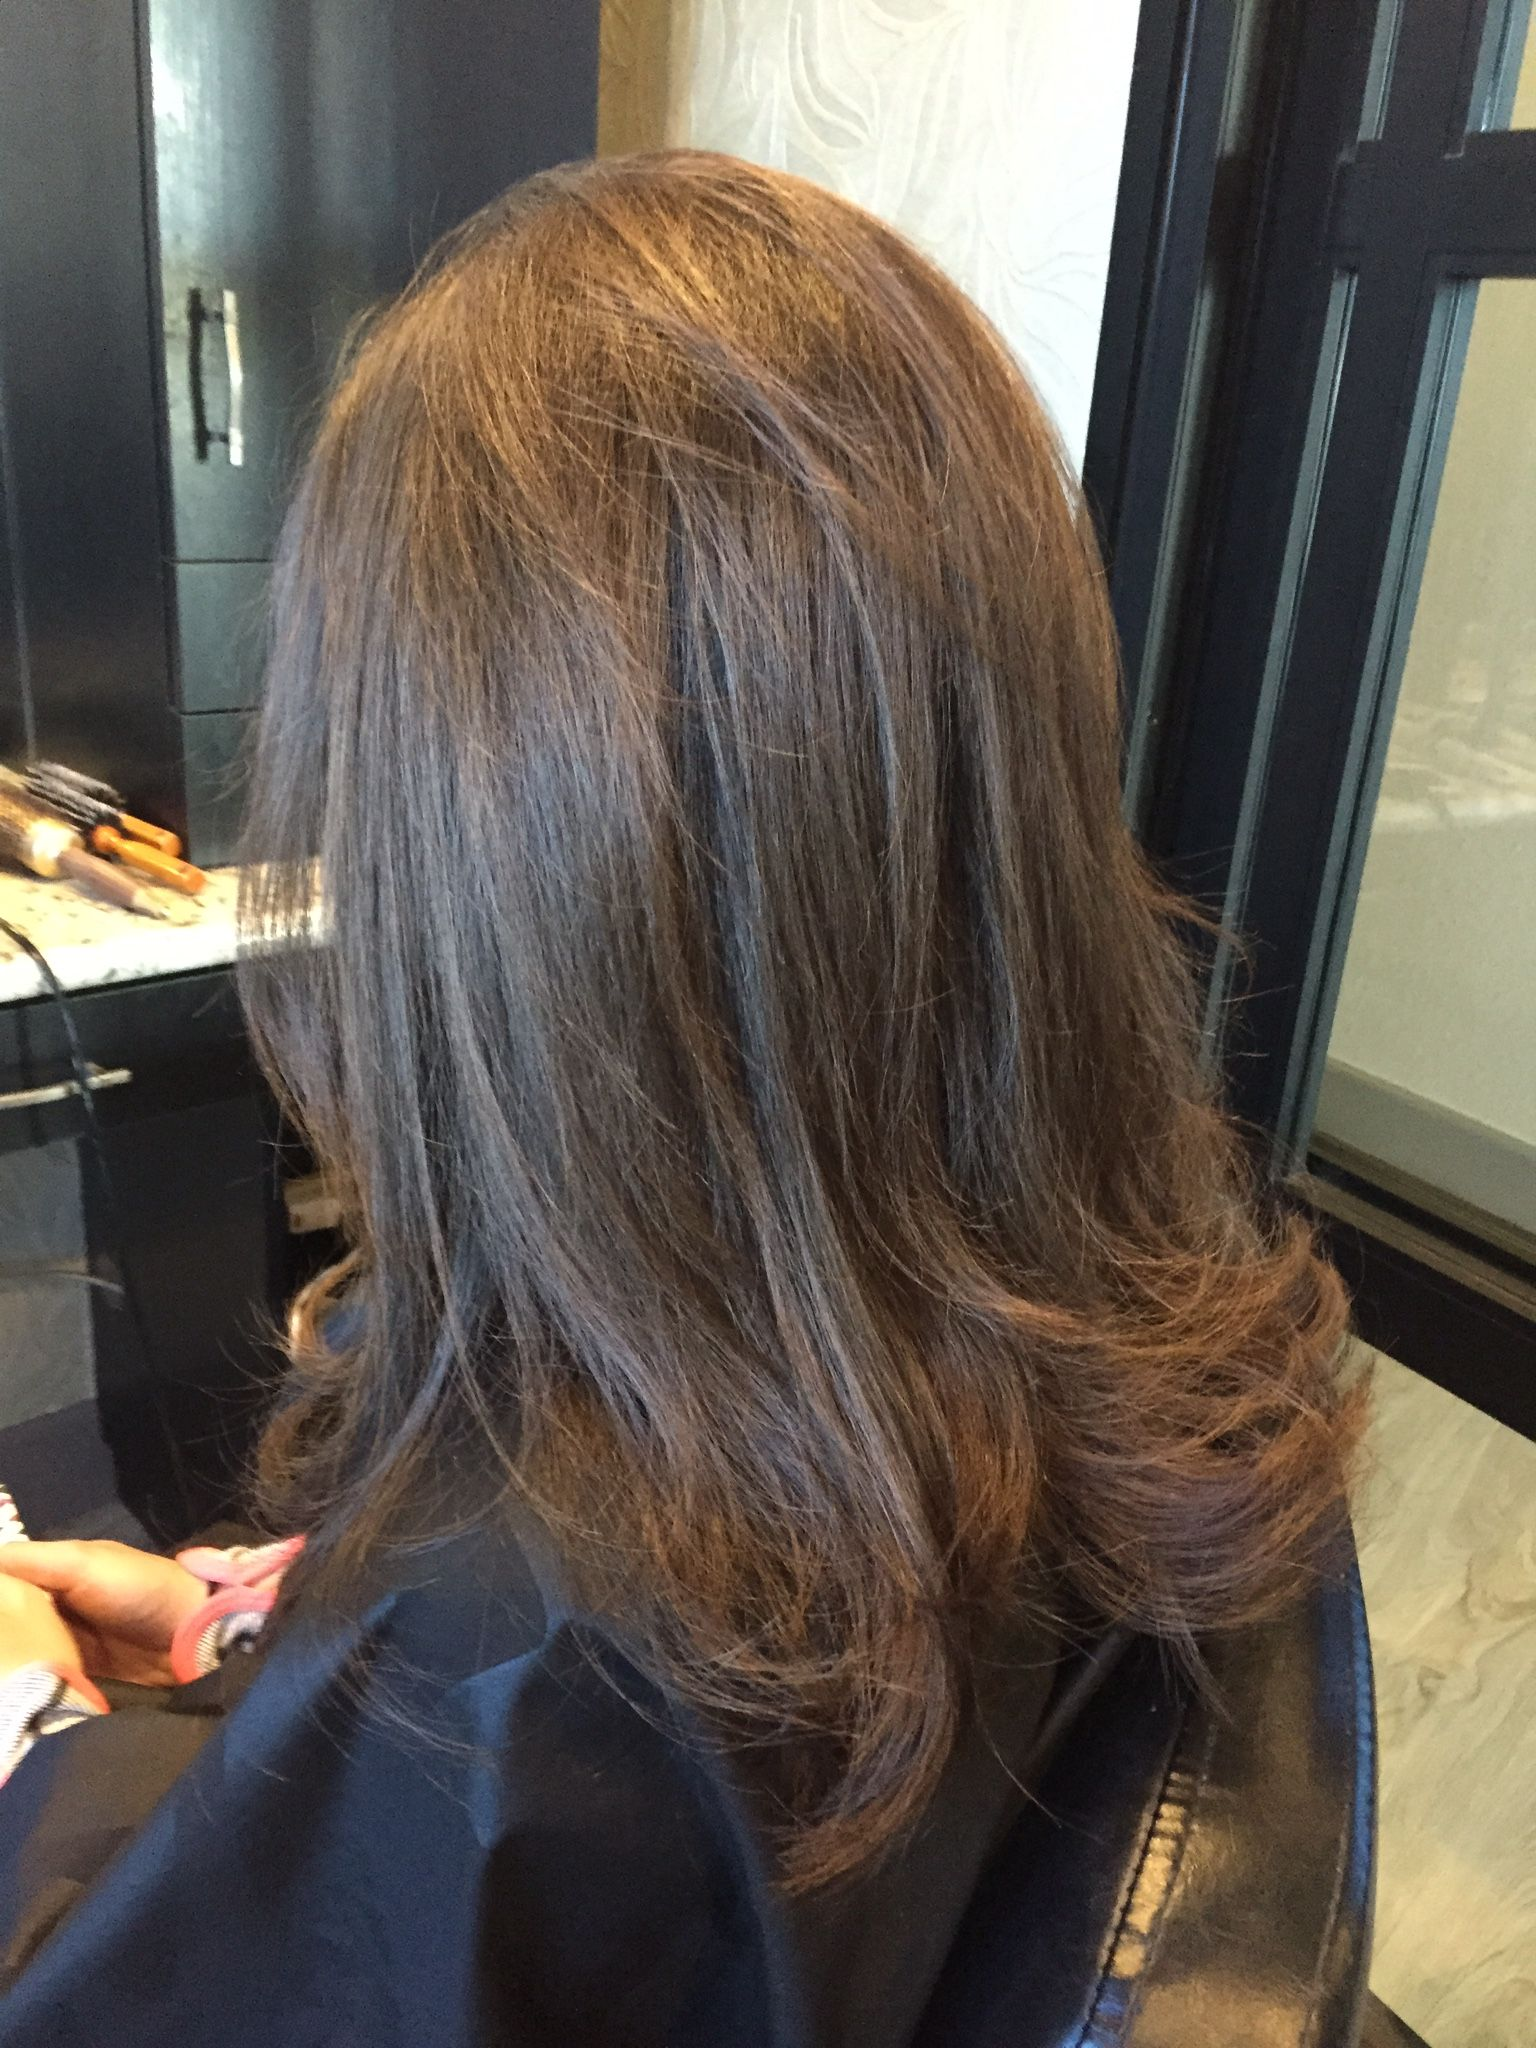 Magic straight perm vs keratin - 25 Best Ideas About Thermal Reconditioning On Pinterest Japanese Hair Straightening Relaxed Hair Growth And Natural Hair Journey